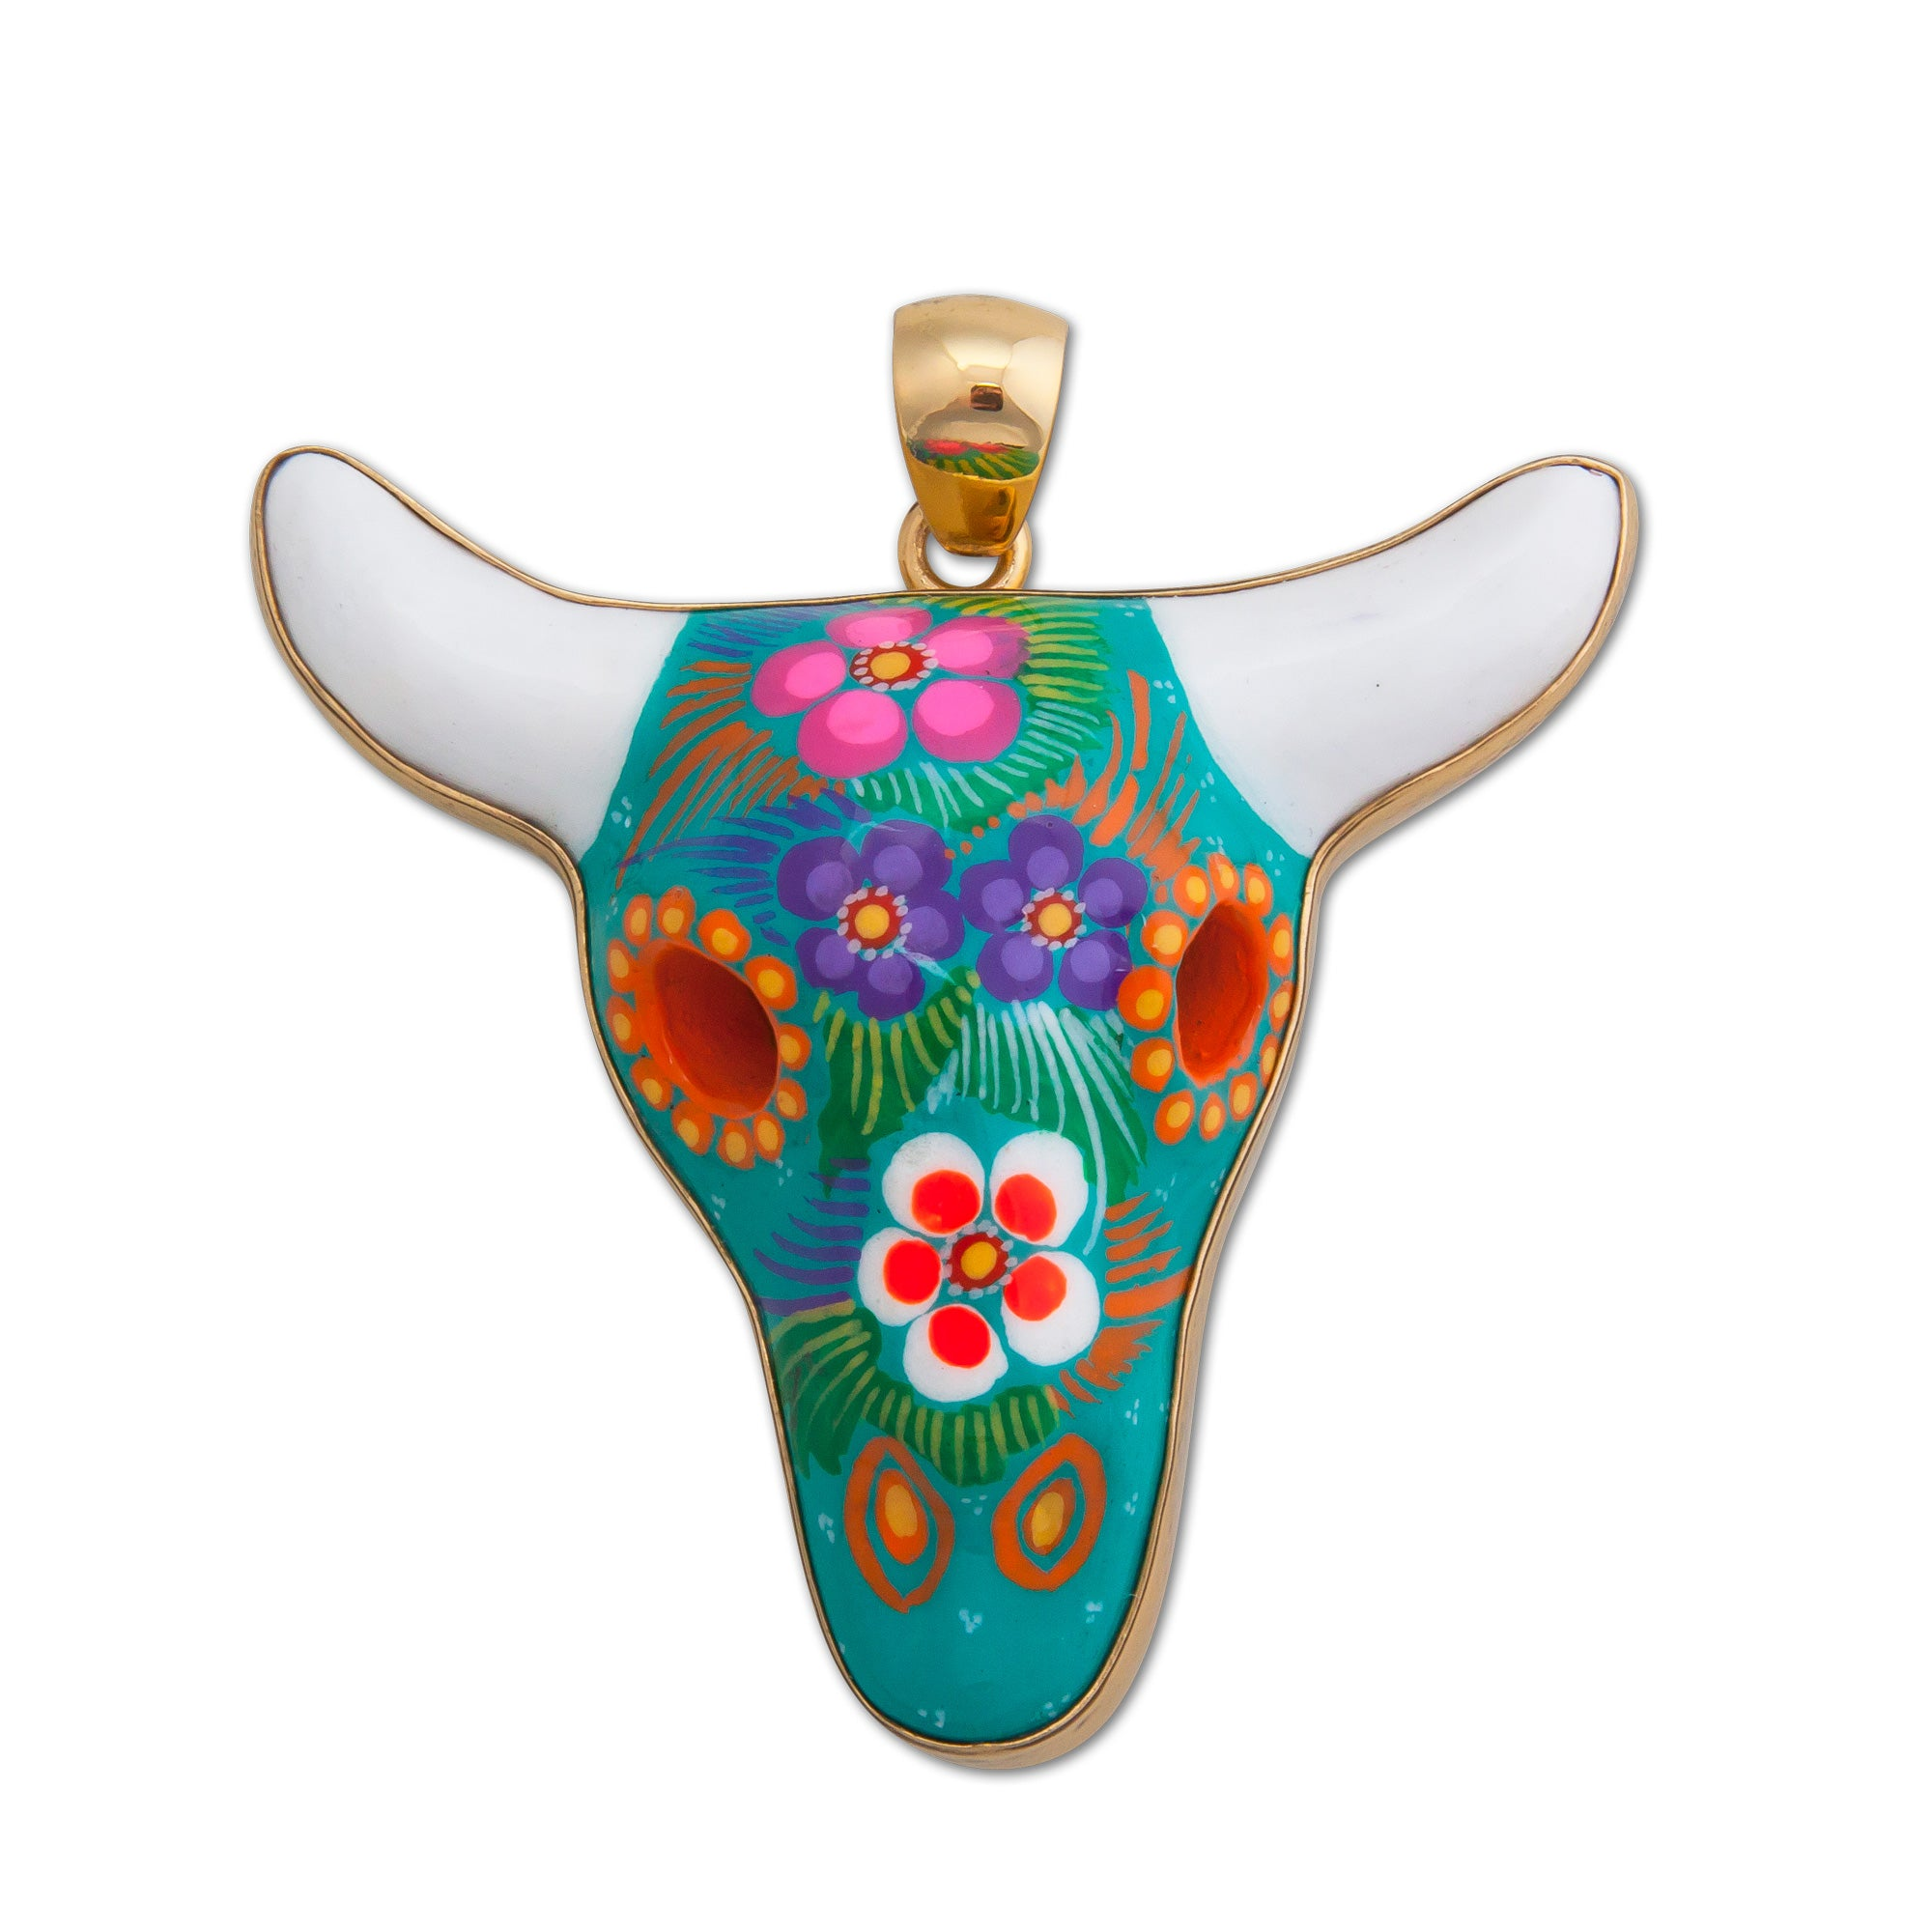 Alchemia-Hand-Painted-Teal-Ceramic-Cow-Skull-Pendant-1-Charles Albert Inc